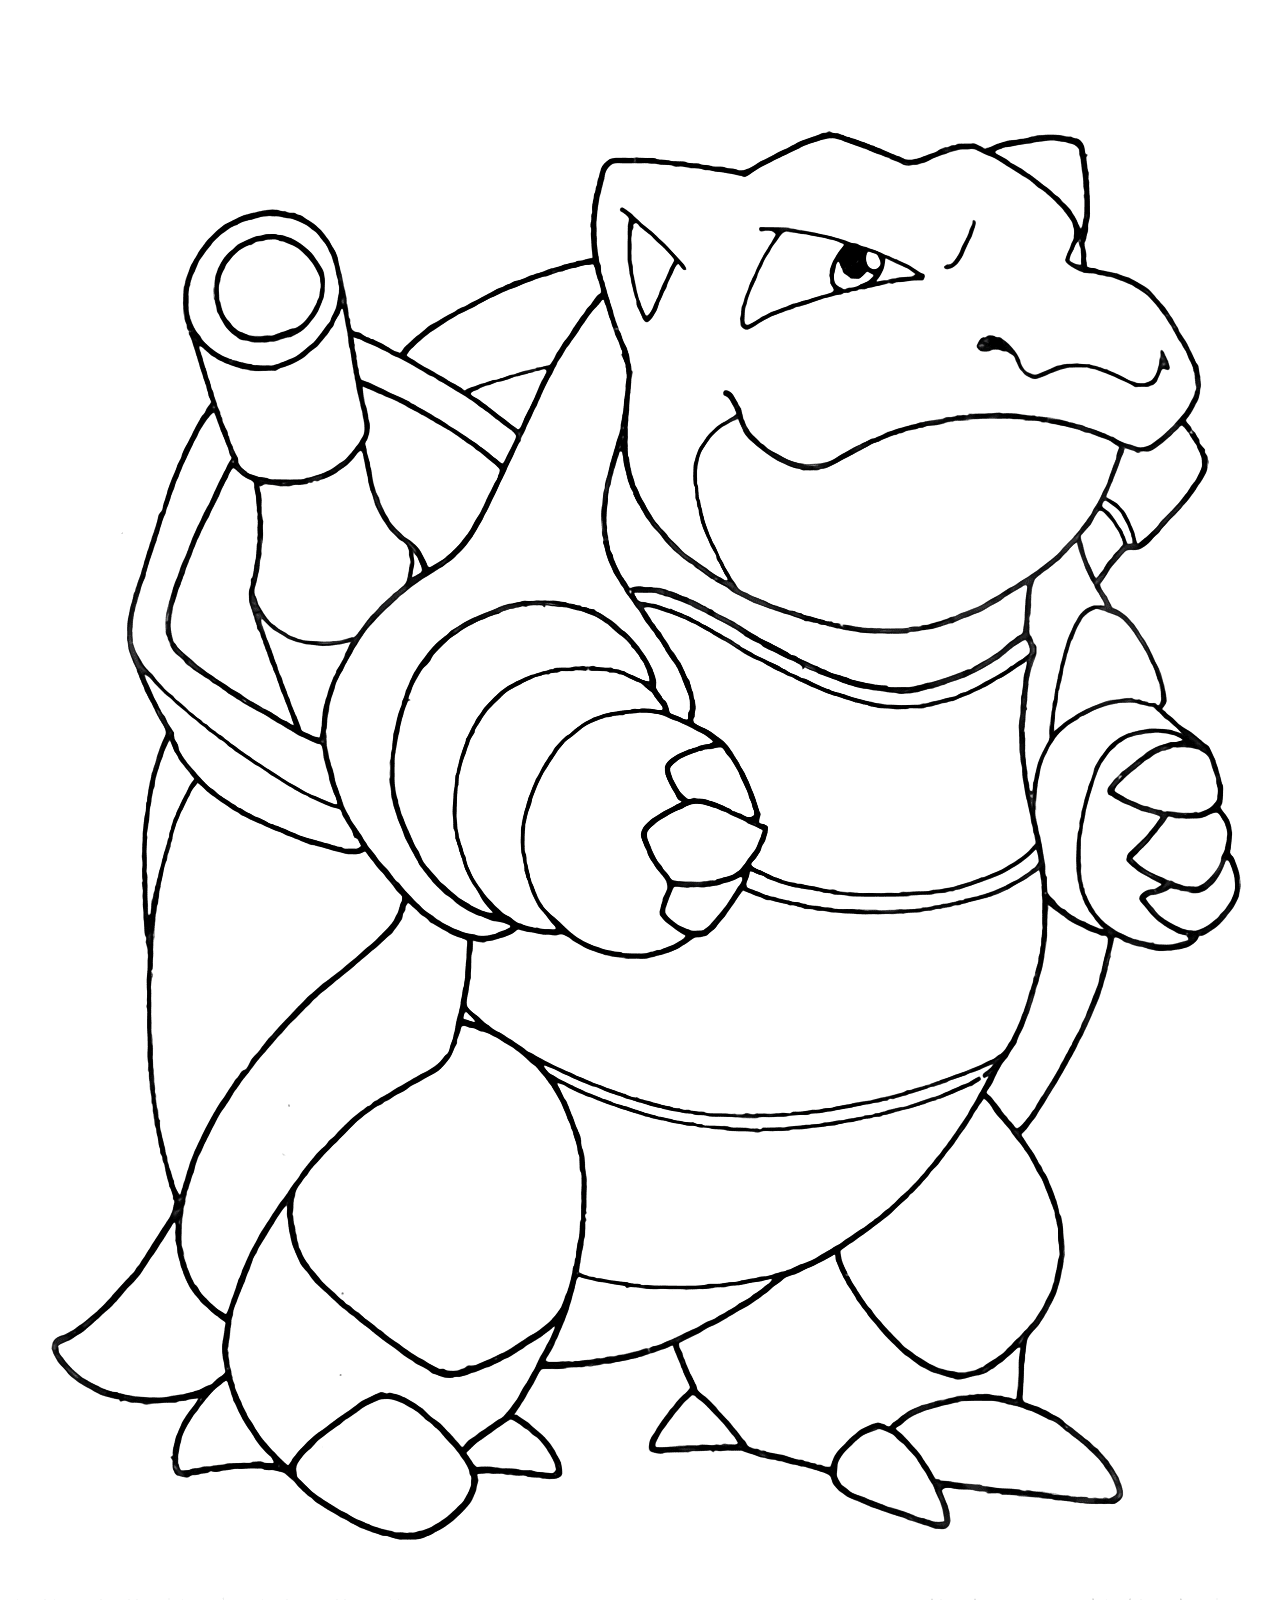 Free Blastoise Coloring Pages Collection - Free Pokemon Coloring Pages